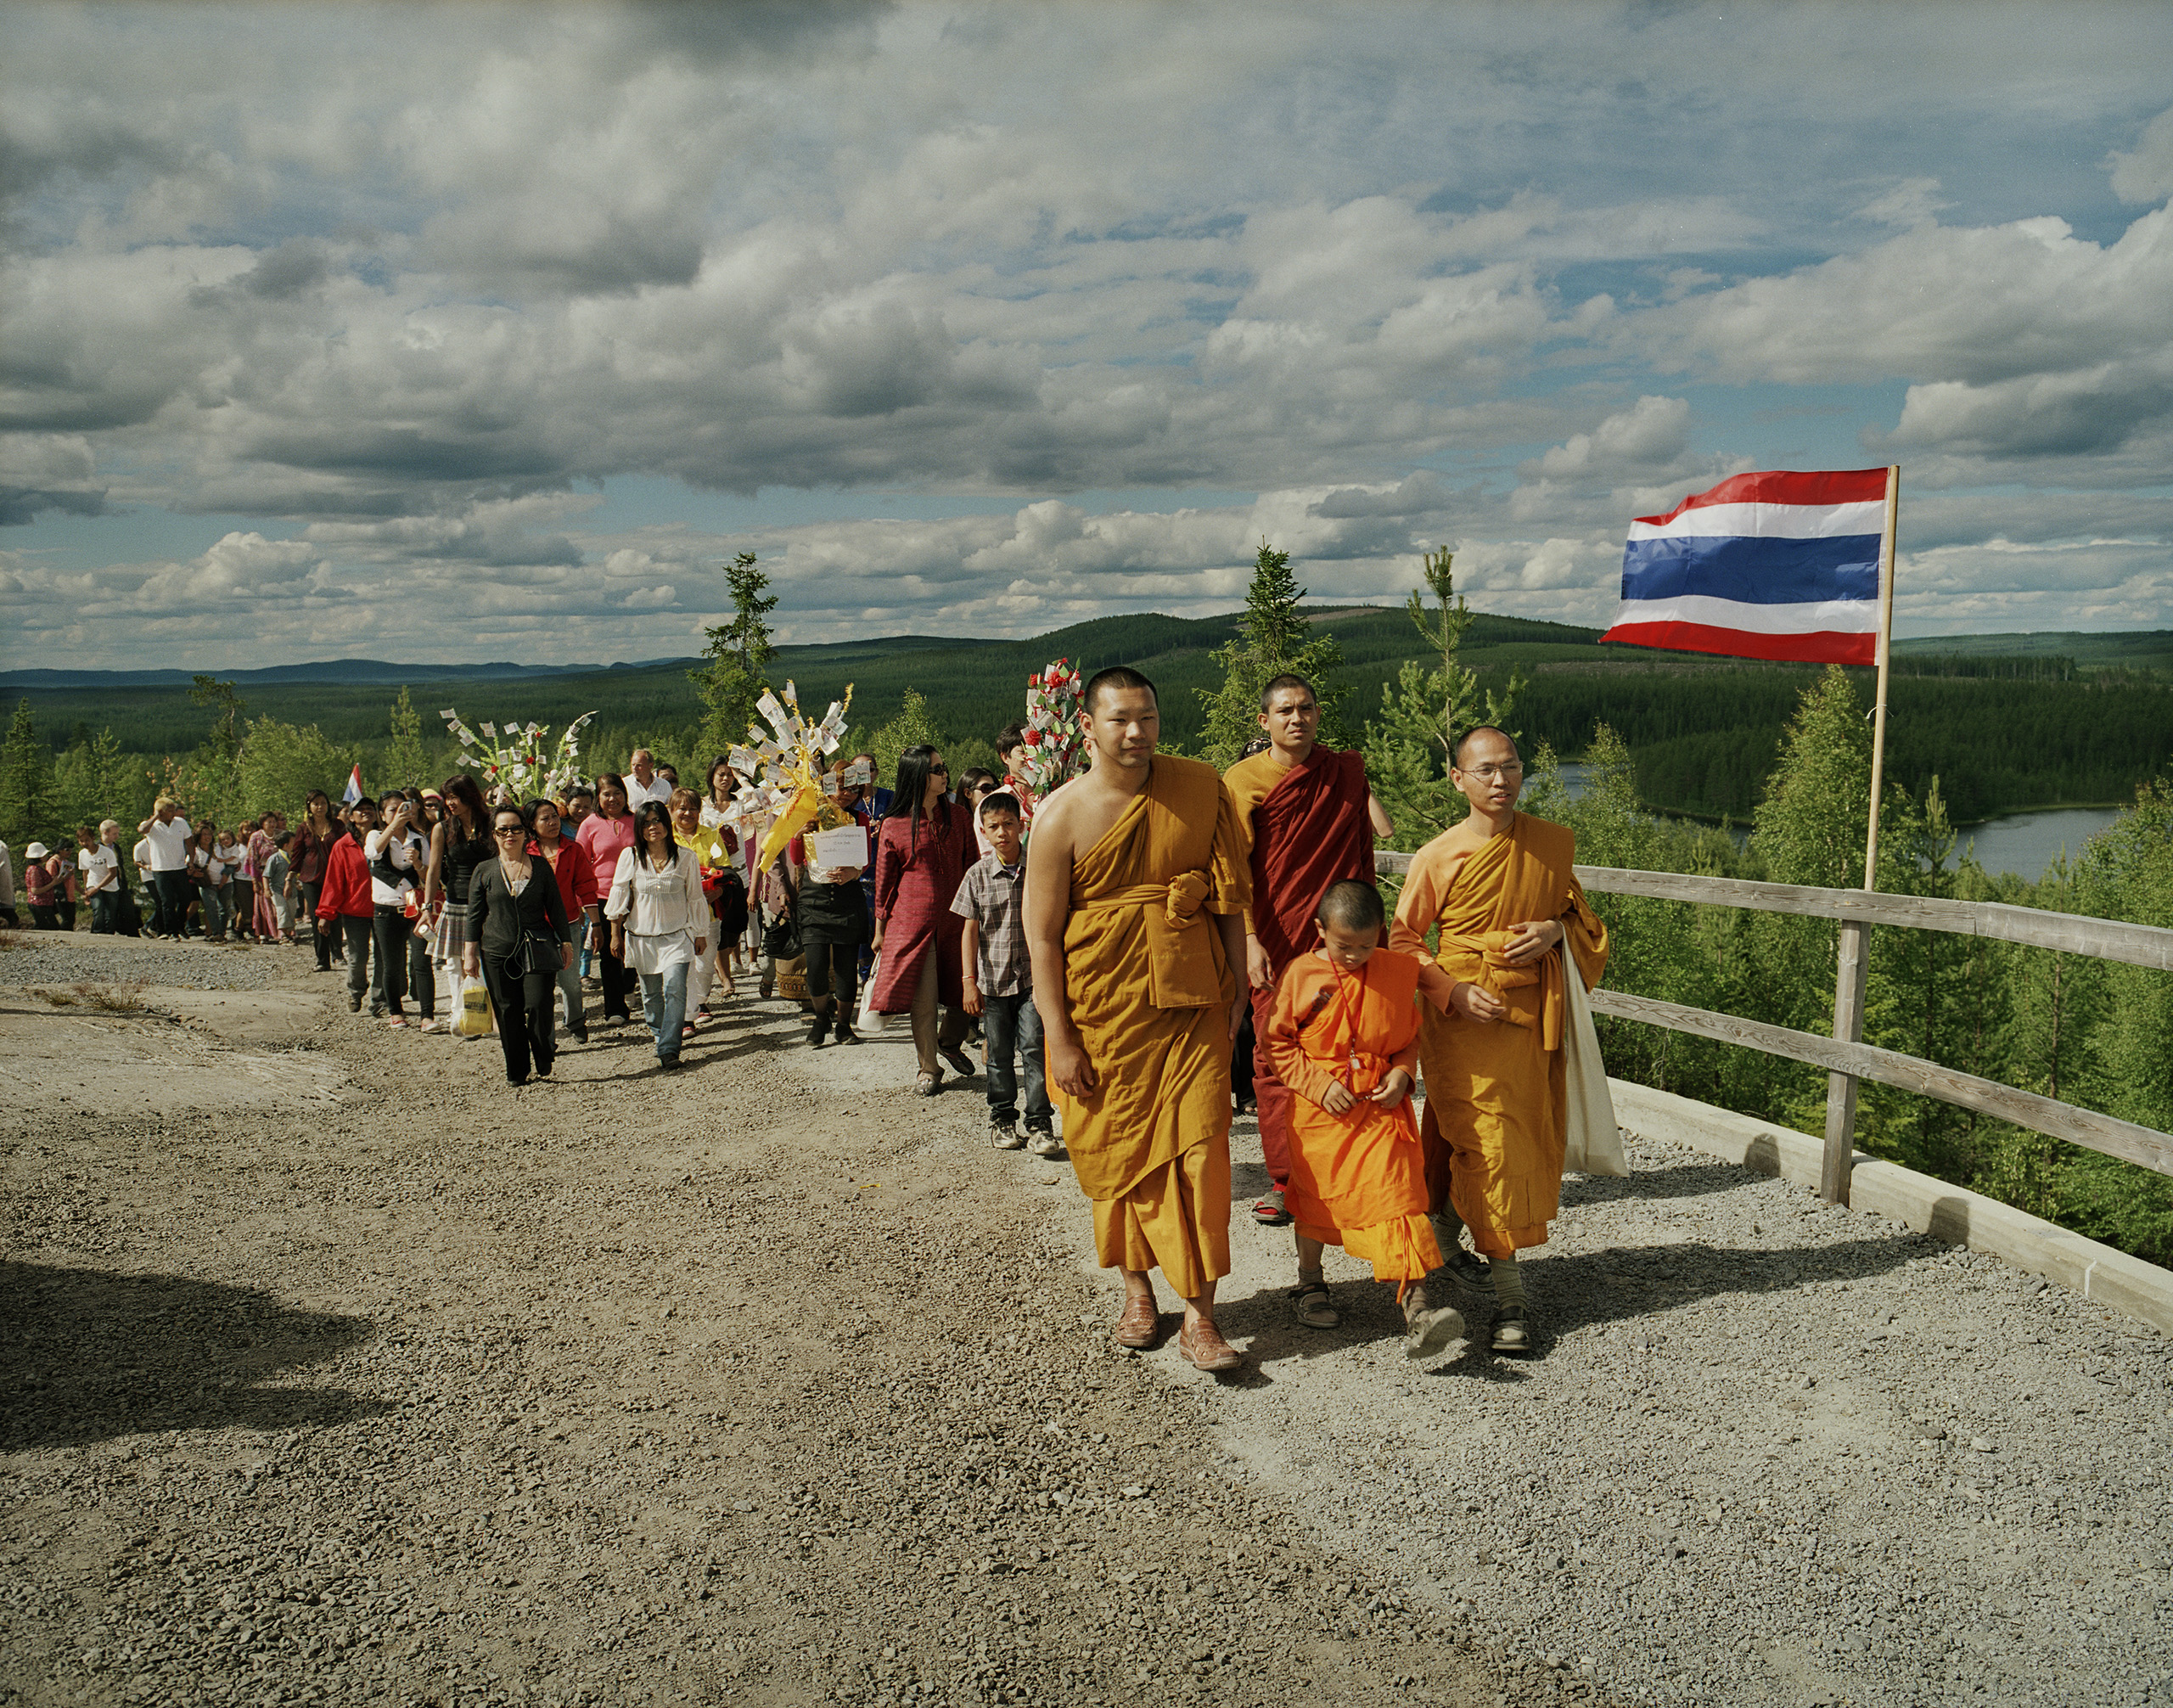 Ceremony on the temple mount, Fredrika, 2008. A Thai Buddhist monk living in Stockholm is planning to build Europe's largest Buddhist temple in Fredrika. Every year he arranges ceremonies to collect money to the temple construction. It has become a meeting point for many Thai women in Sweden.